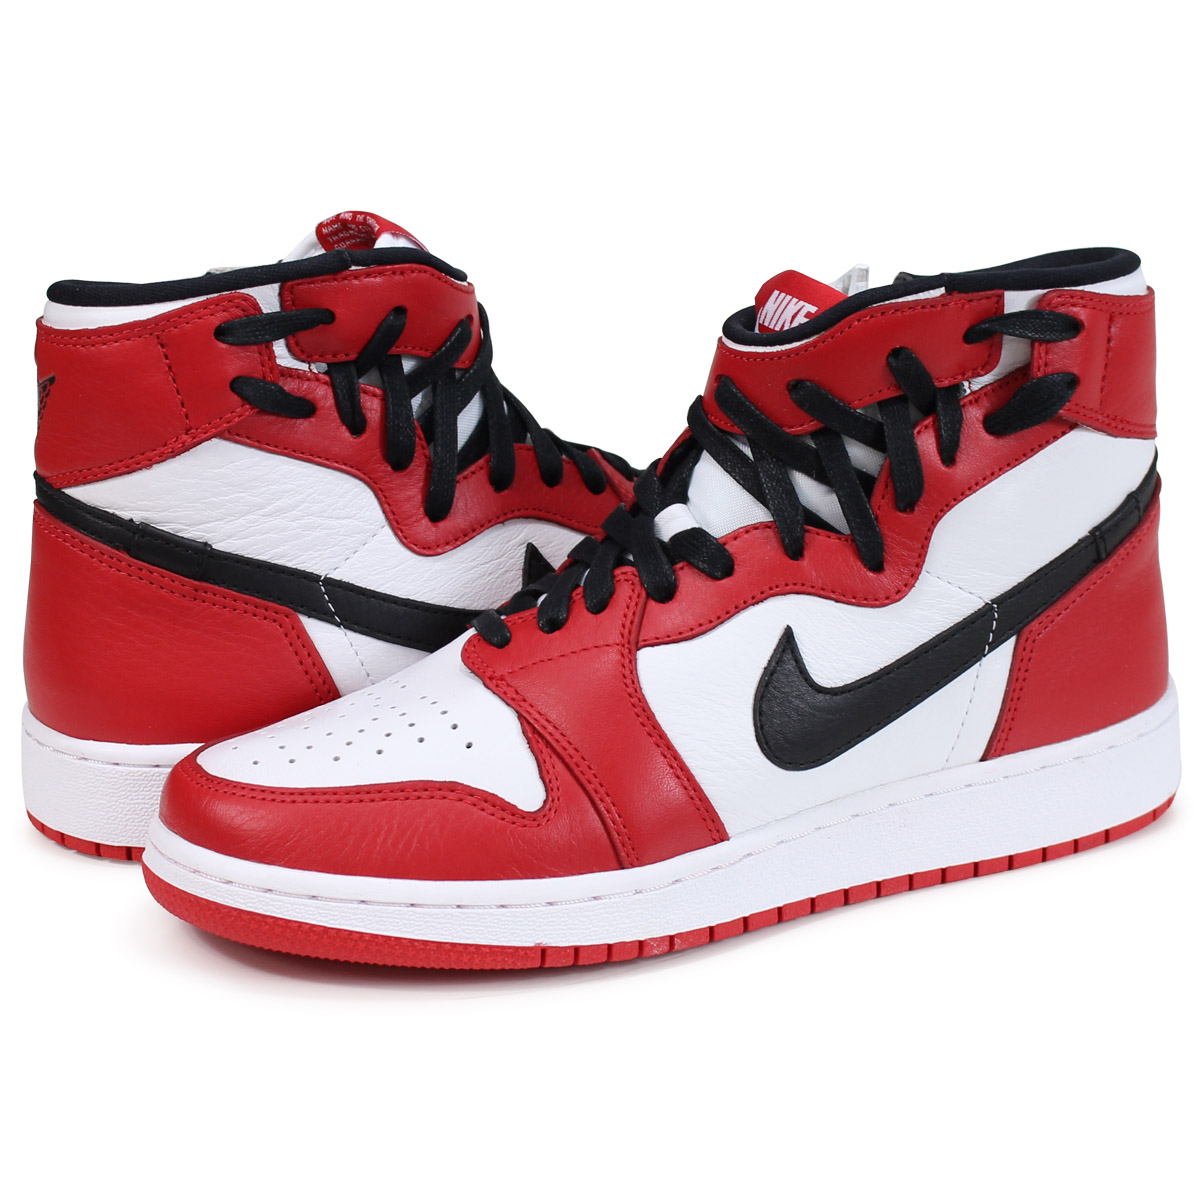 Wmns 1 Xx 100 Load Og Nostalgic Air Jordan Lady's In 629 At4151 Reservation Nike Whiteload Shinnyu Rebel Sneakers Product Planned wk0OX8Pn